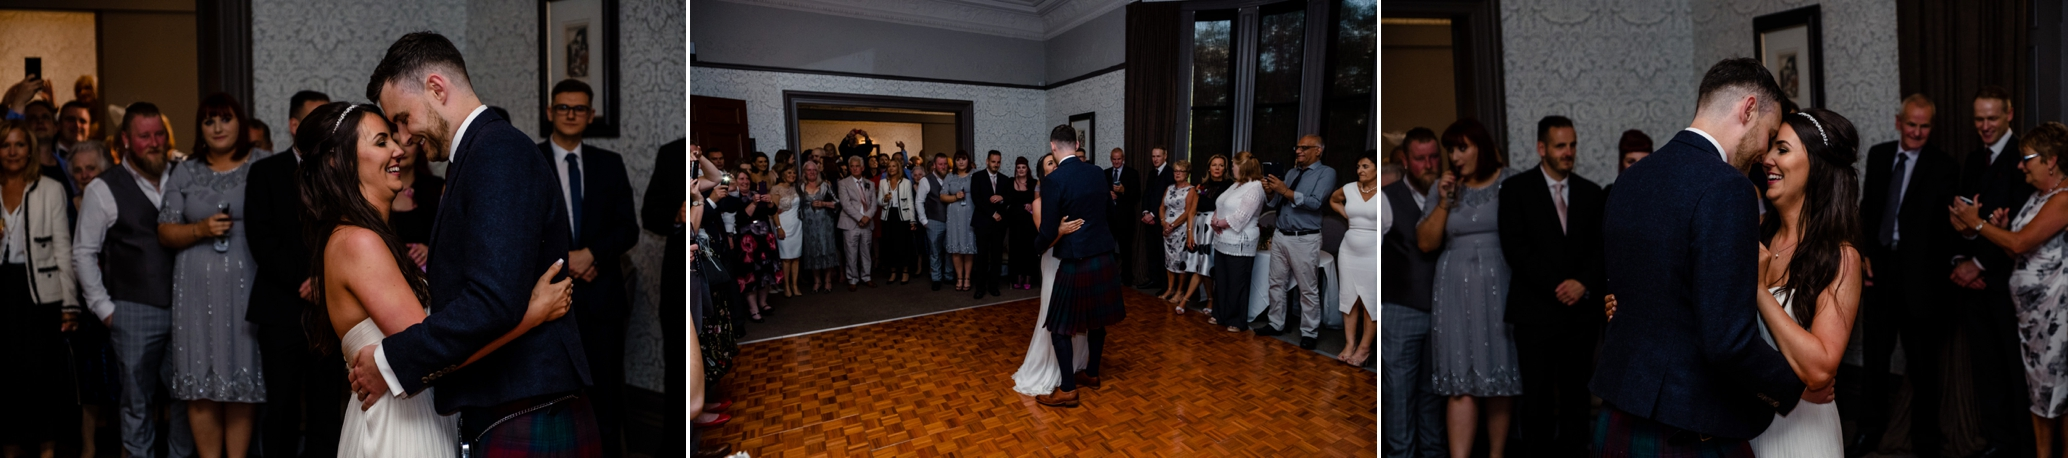 One Devonshire Gardens - Wedding Photos_157_WEB.jpg